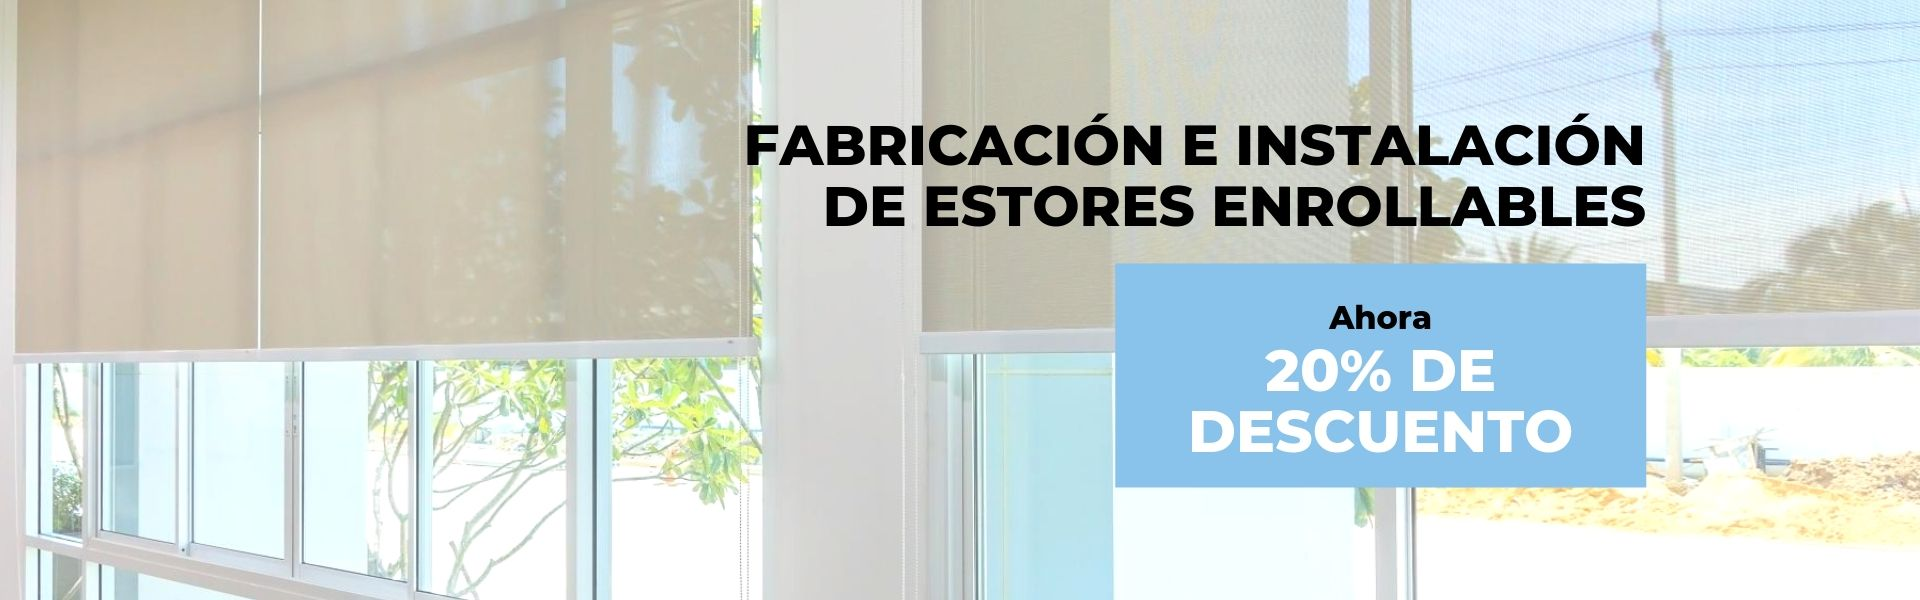 Oferta estores enrollables